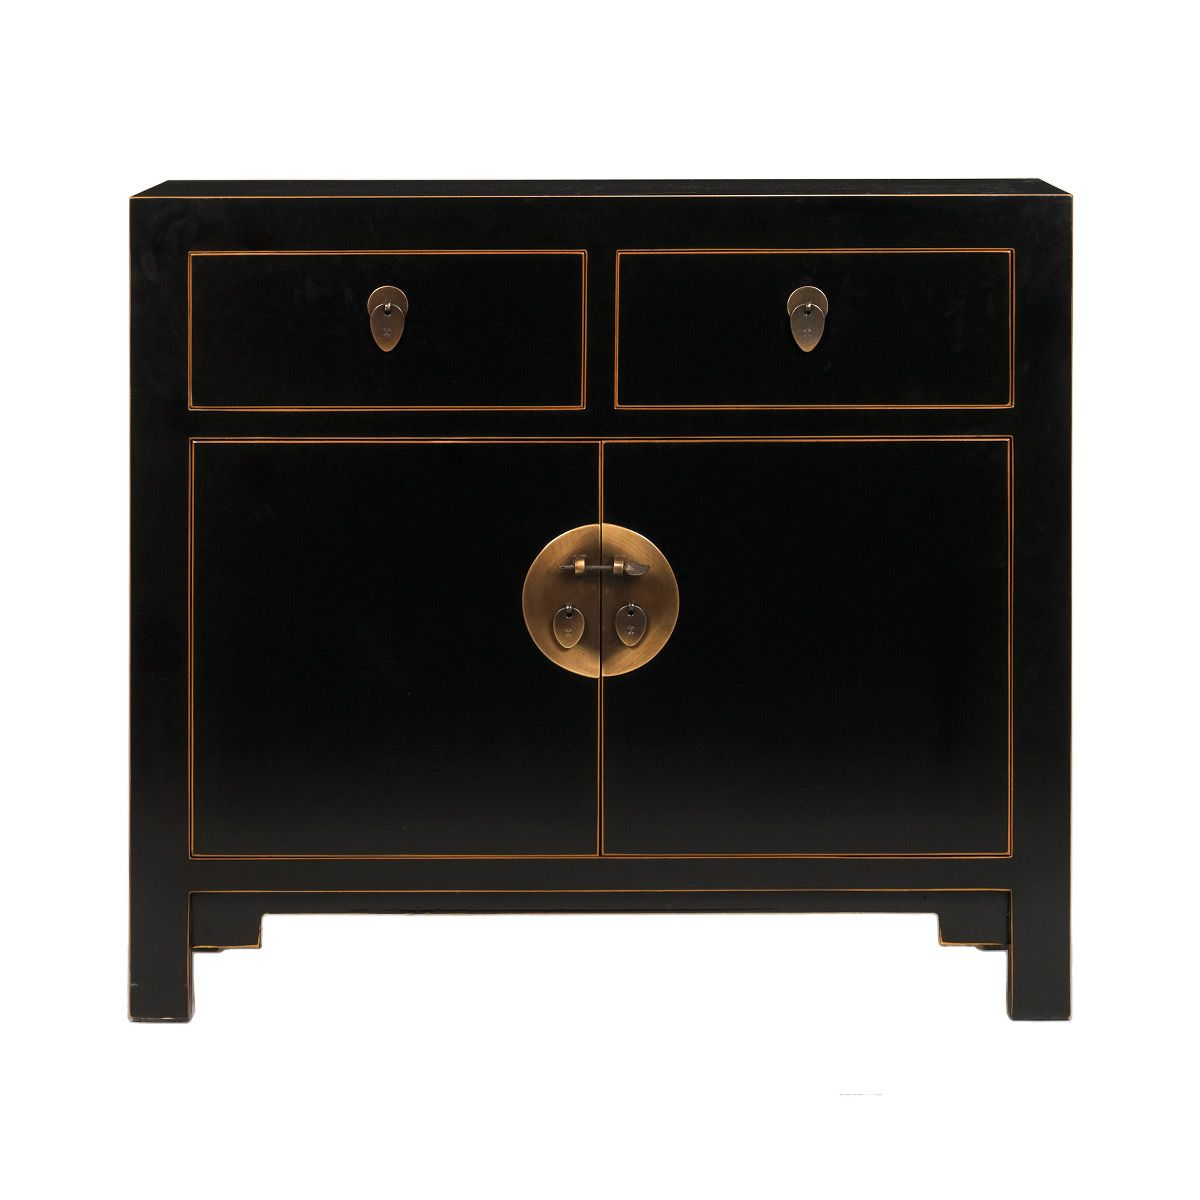 Sideboard for living room http://www.thenineschools.co.uk/chinese ...